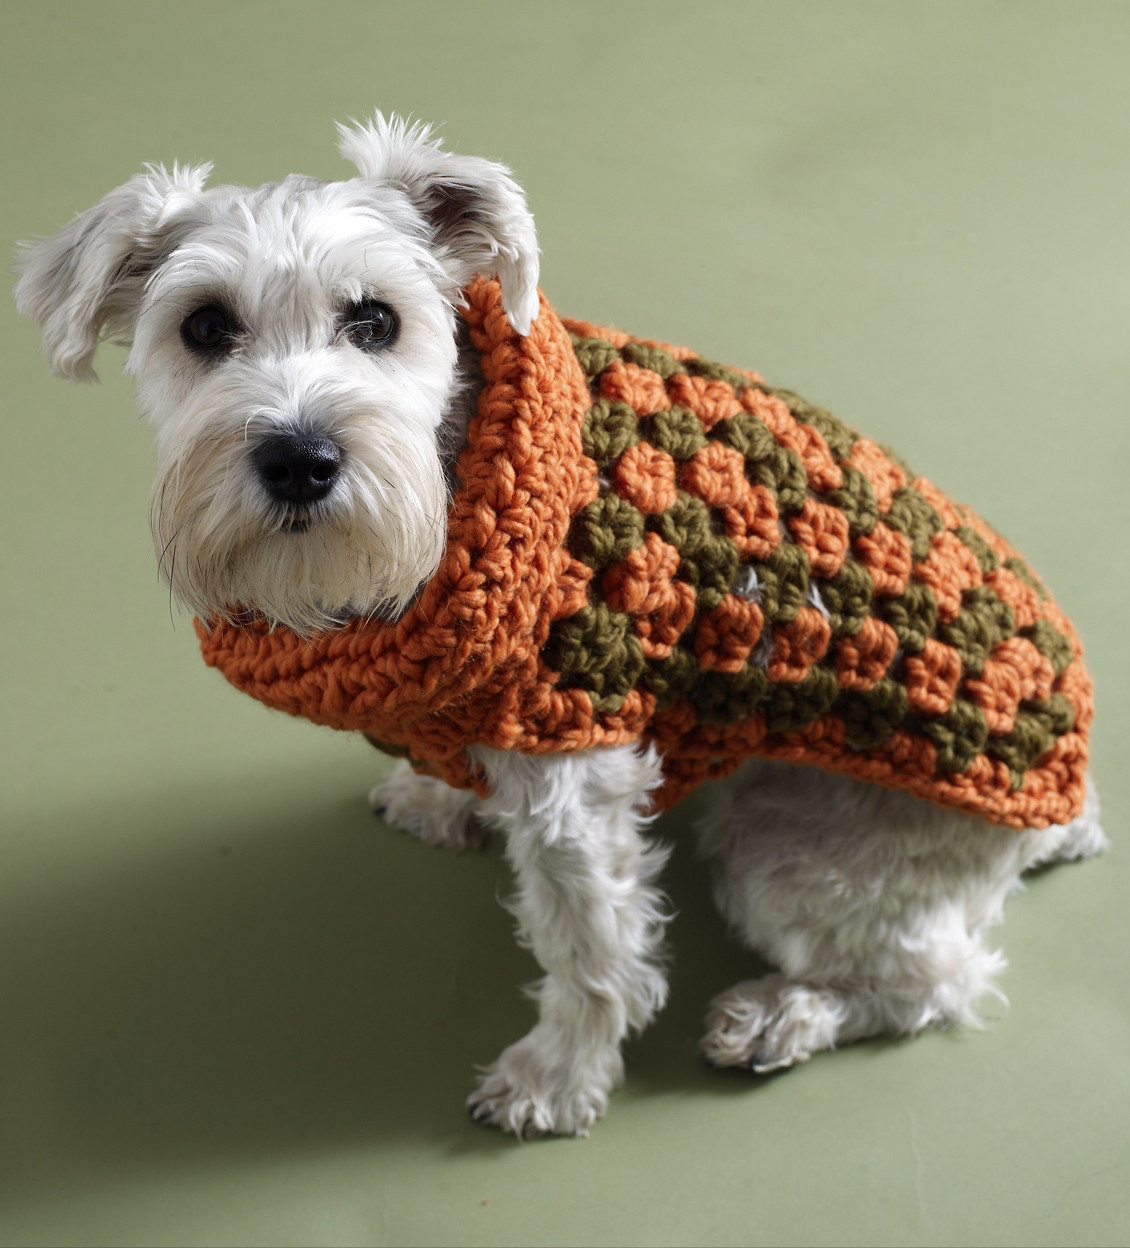 Free Crochet Dog Sweater Patterns Inspirational Keep Your Dog Warm with A Crochet Dog Sweater Crochet Of Marvelous 44 Photos Free Crochet Dog Sweater Patterns